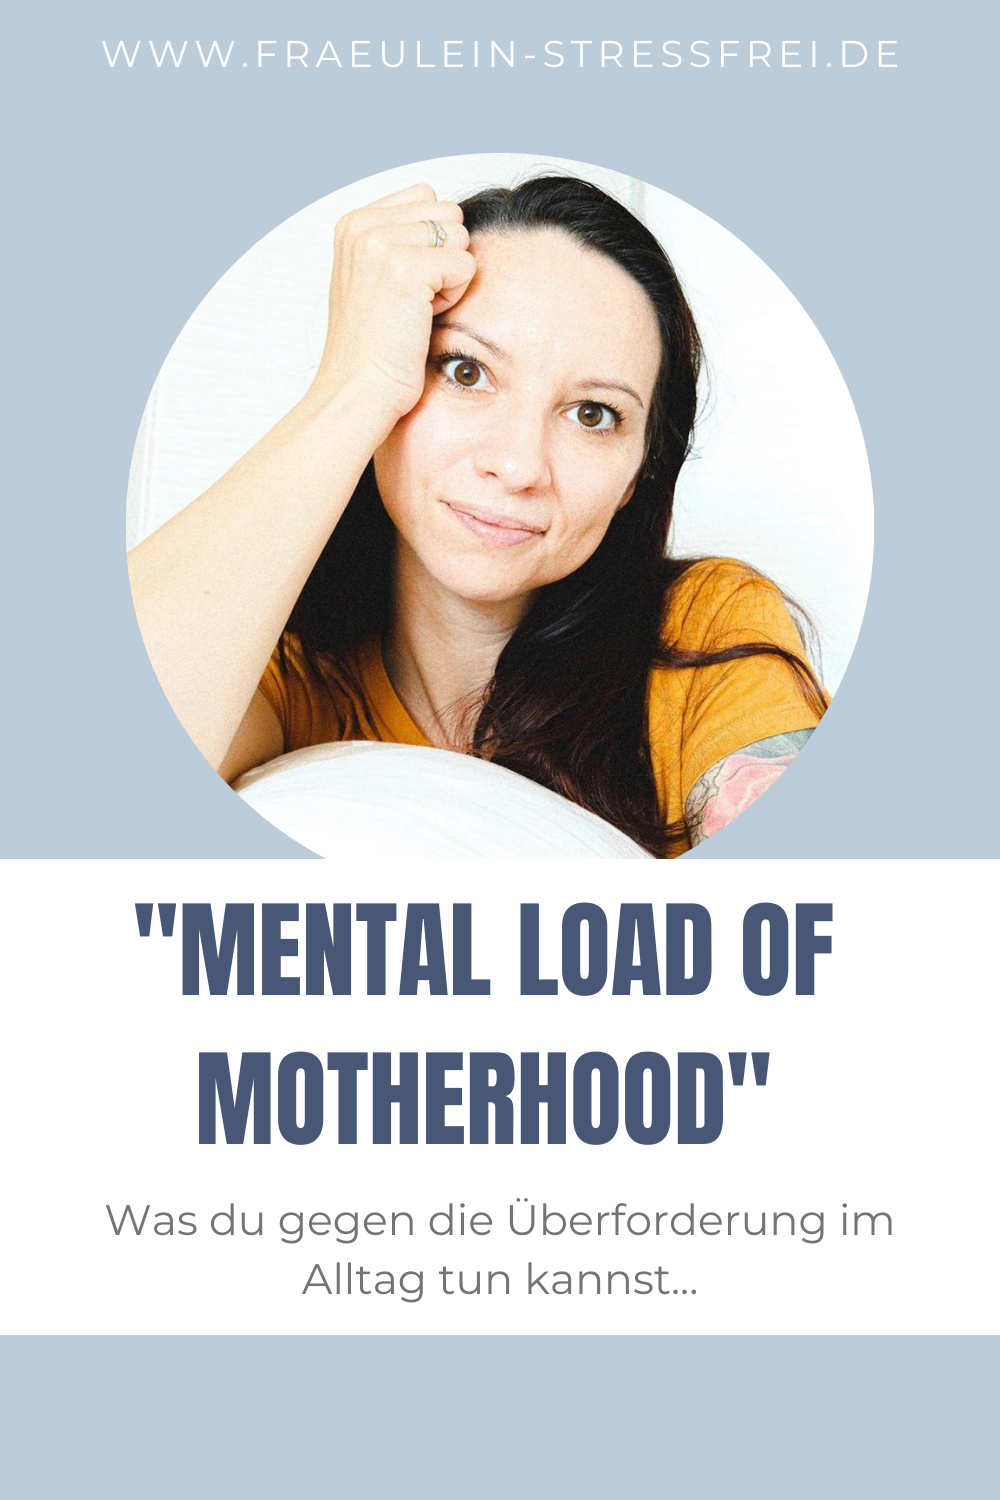 Mental Load of motherhood